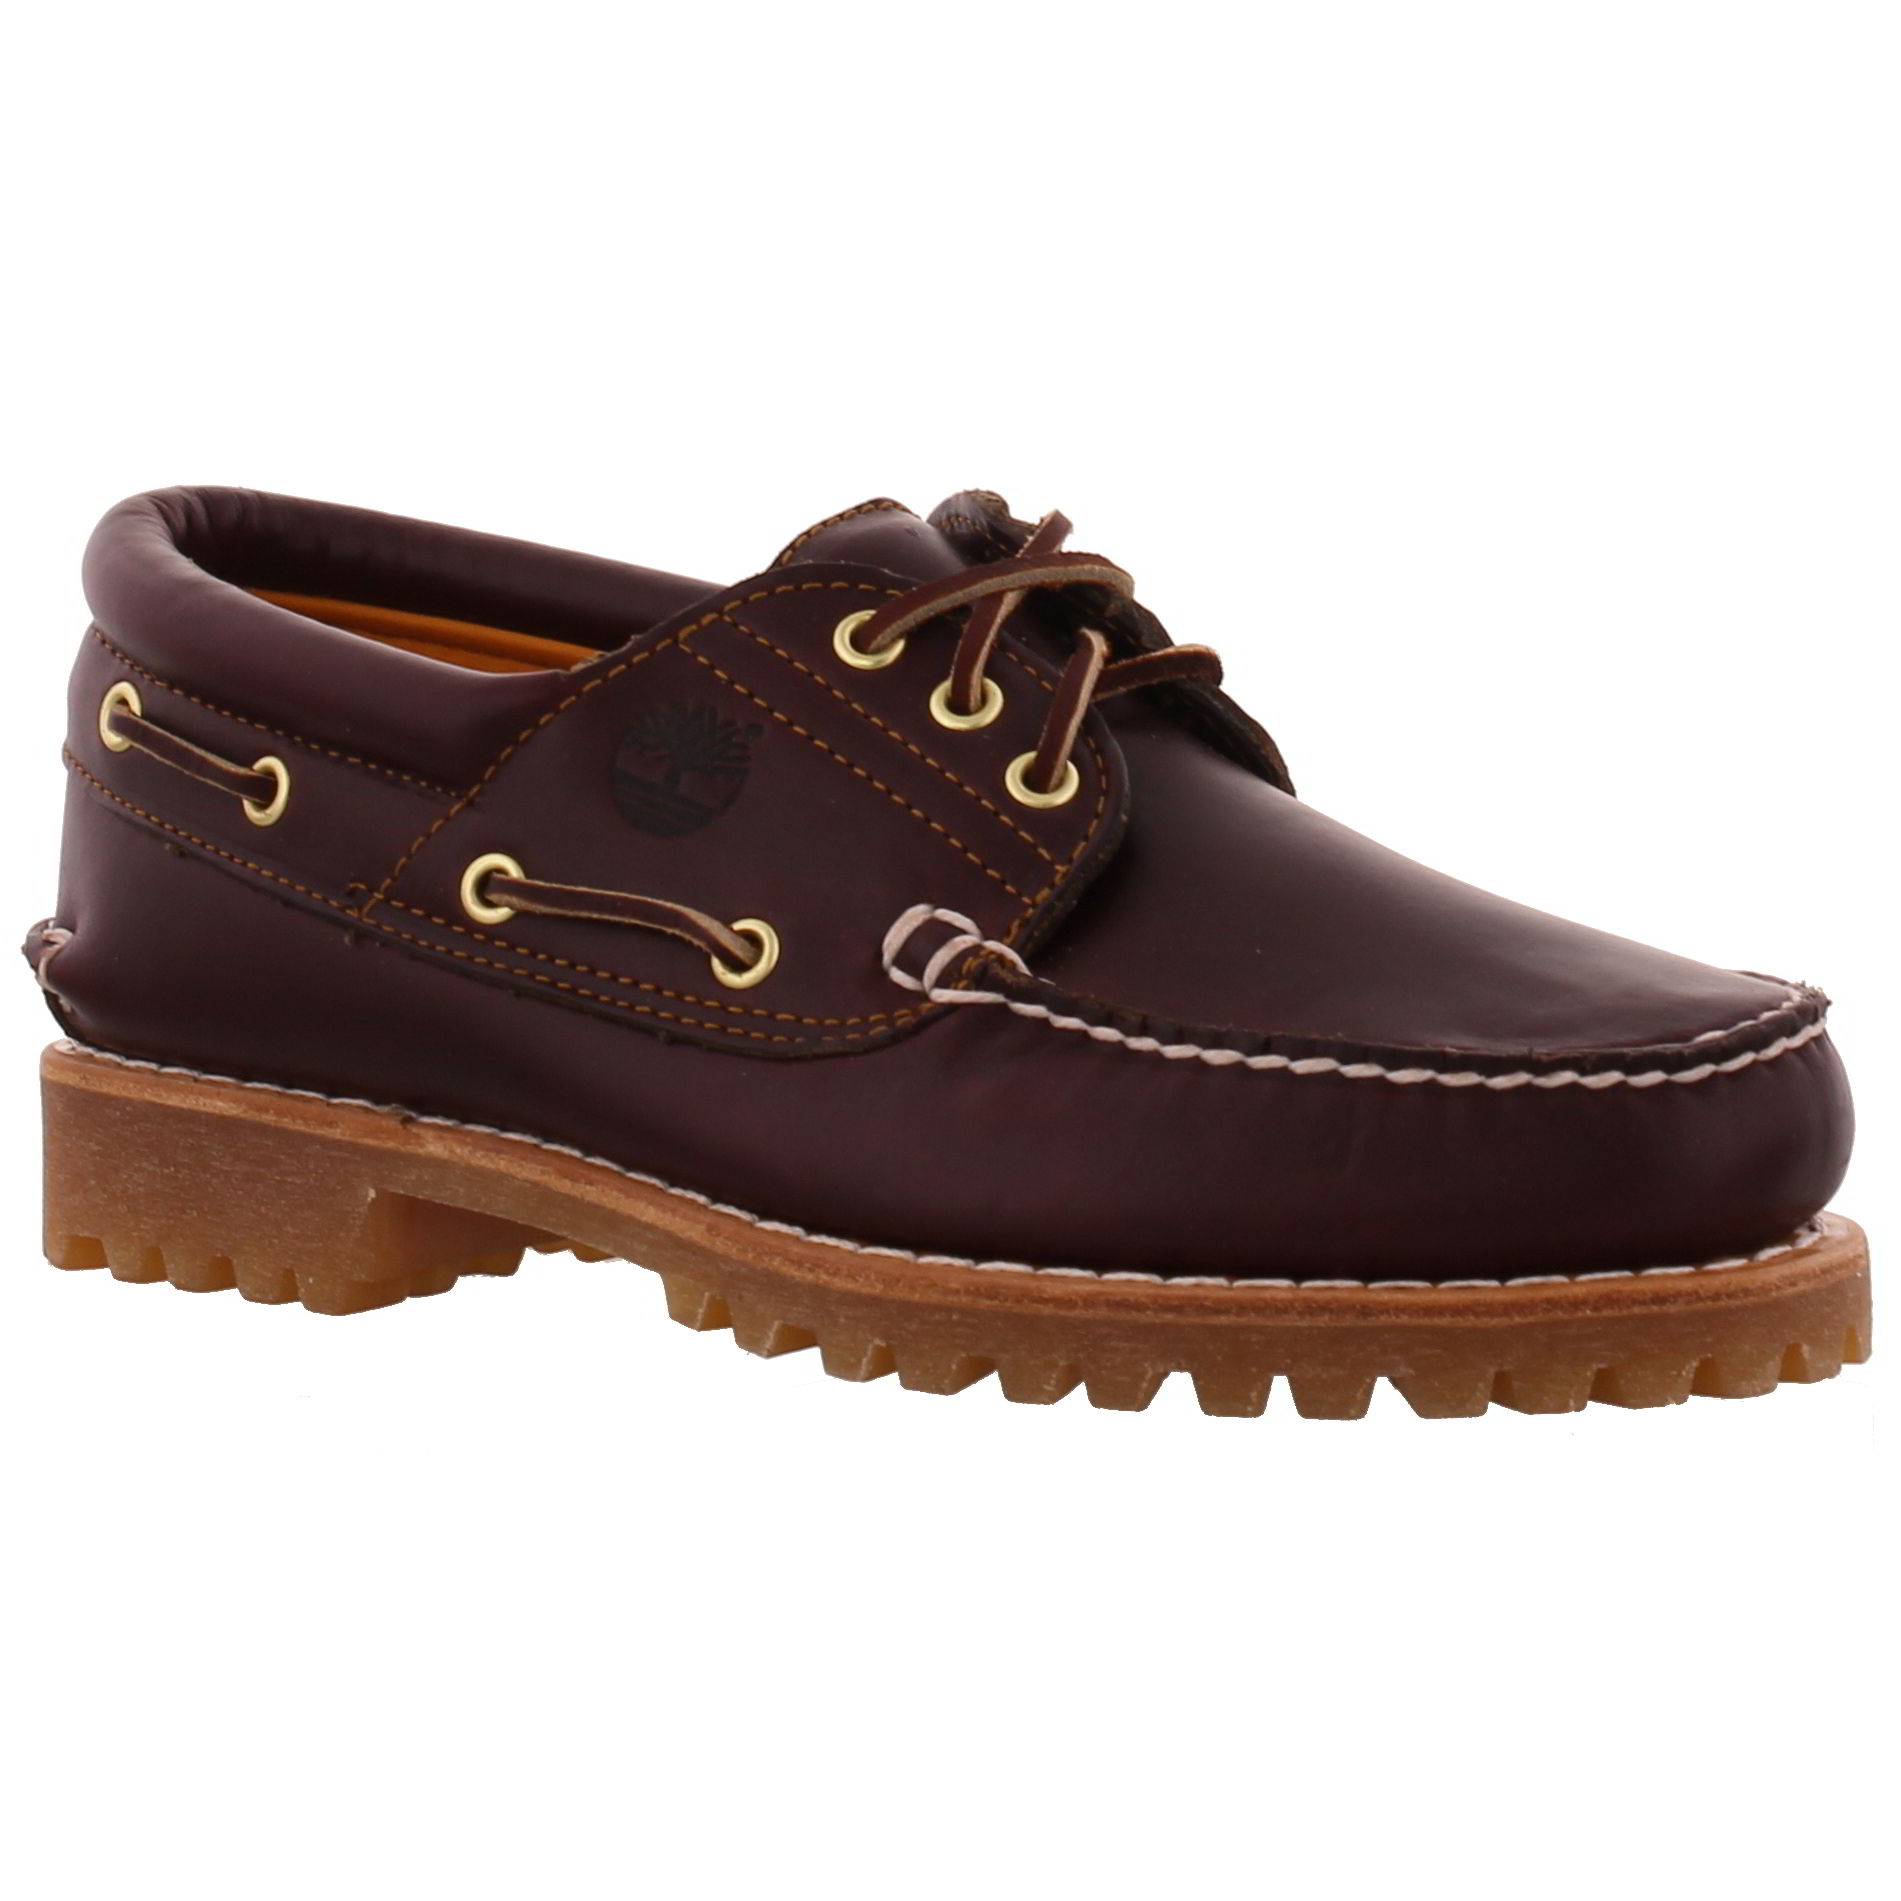 Timberland Mens Heritage Boat Shoes  Burgundy